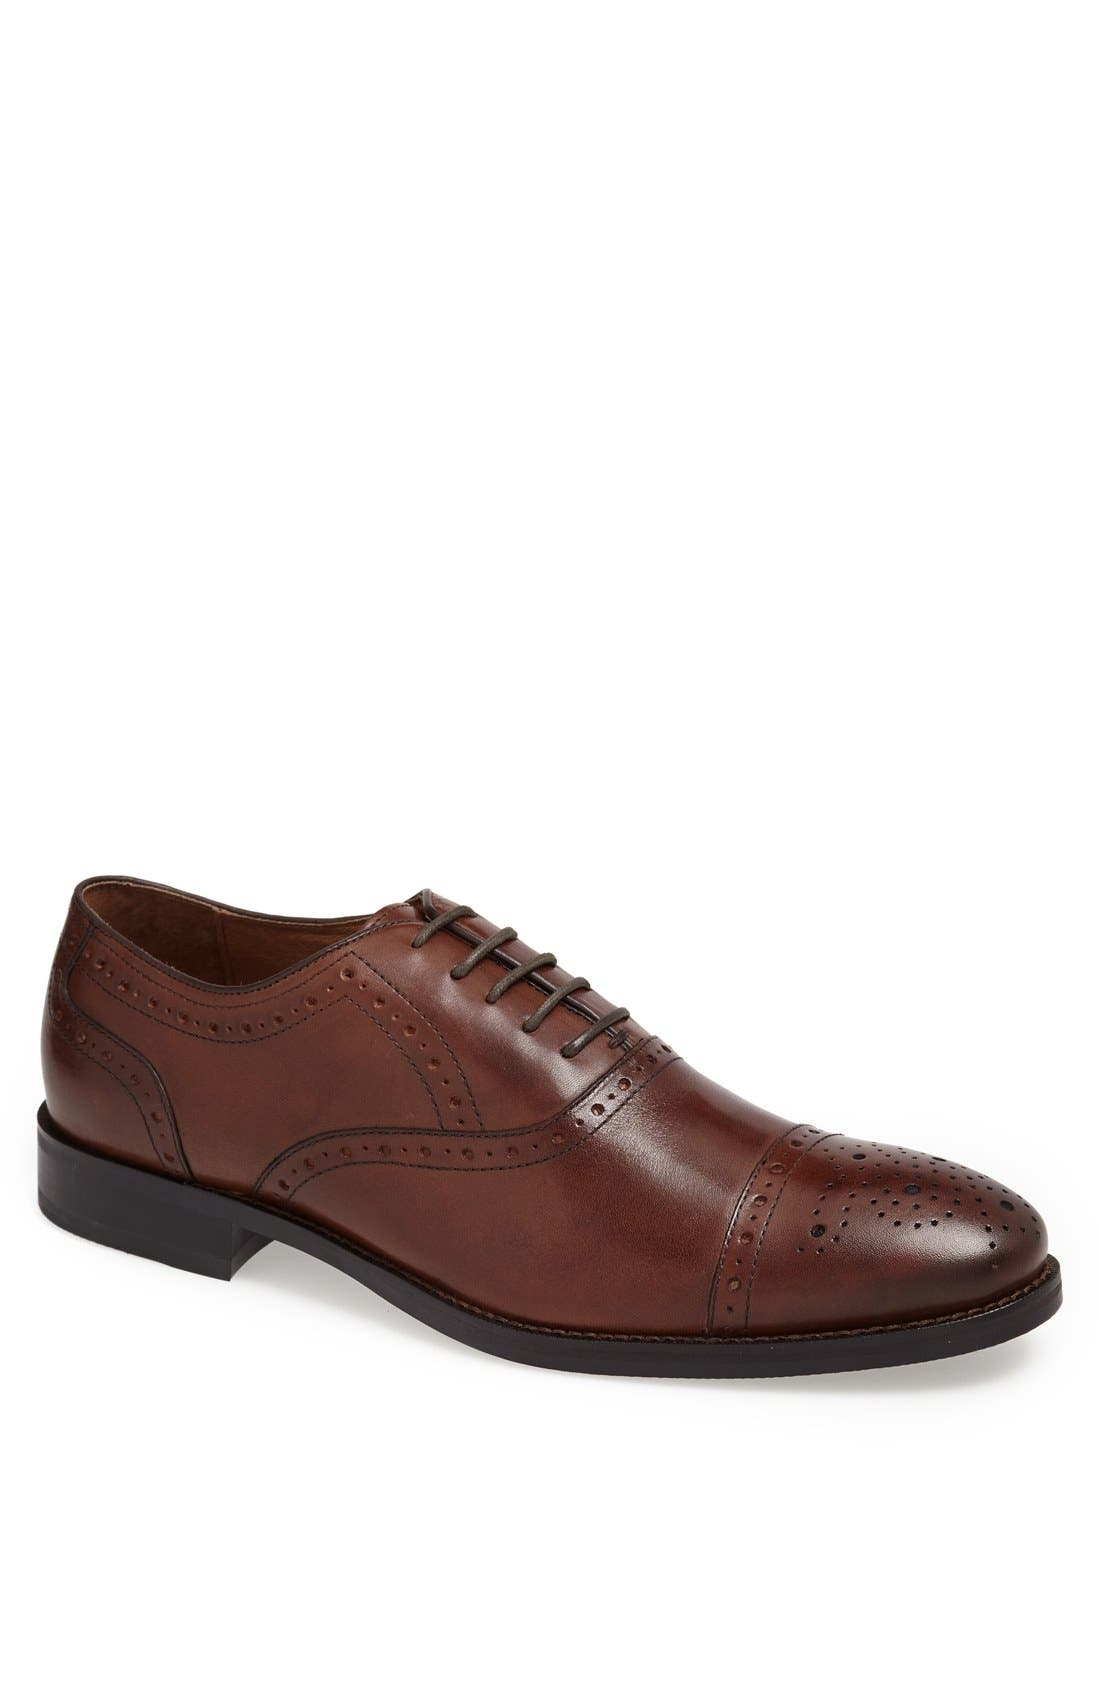 Main Image - Johnston & Murphy 'Tyndall' Cap Toe Oxford (Online Only)